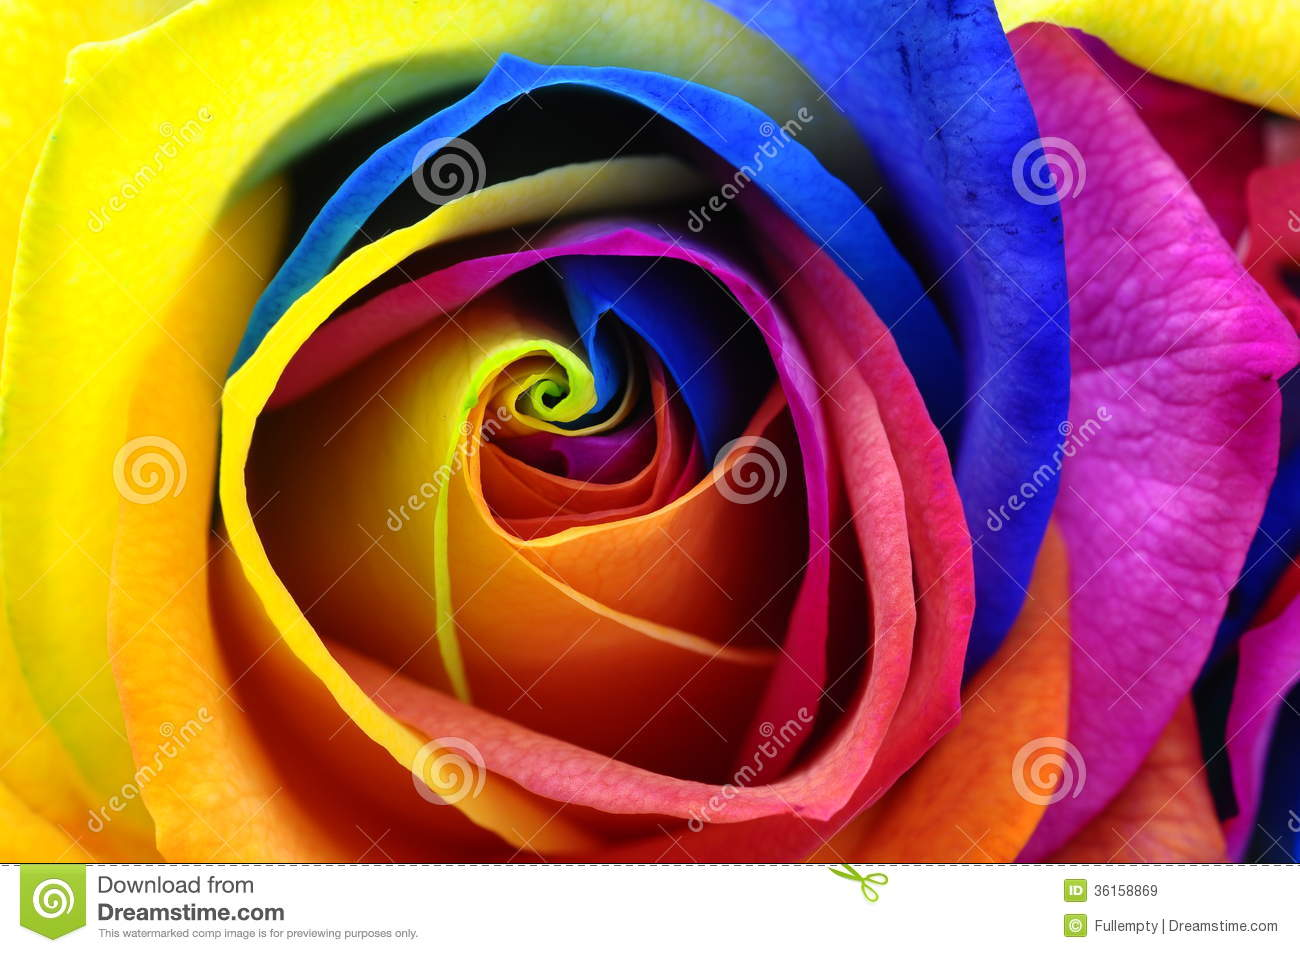 Rainbow rose or happy flower royalty free stock images for Multi colored rose petals